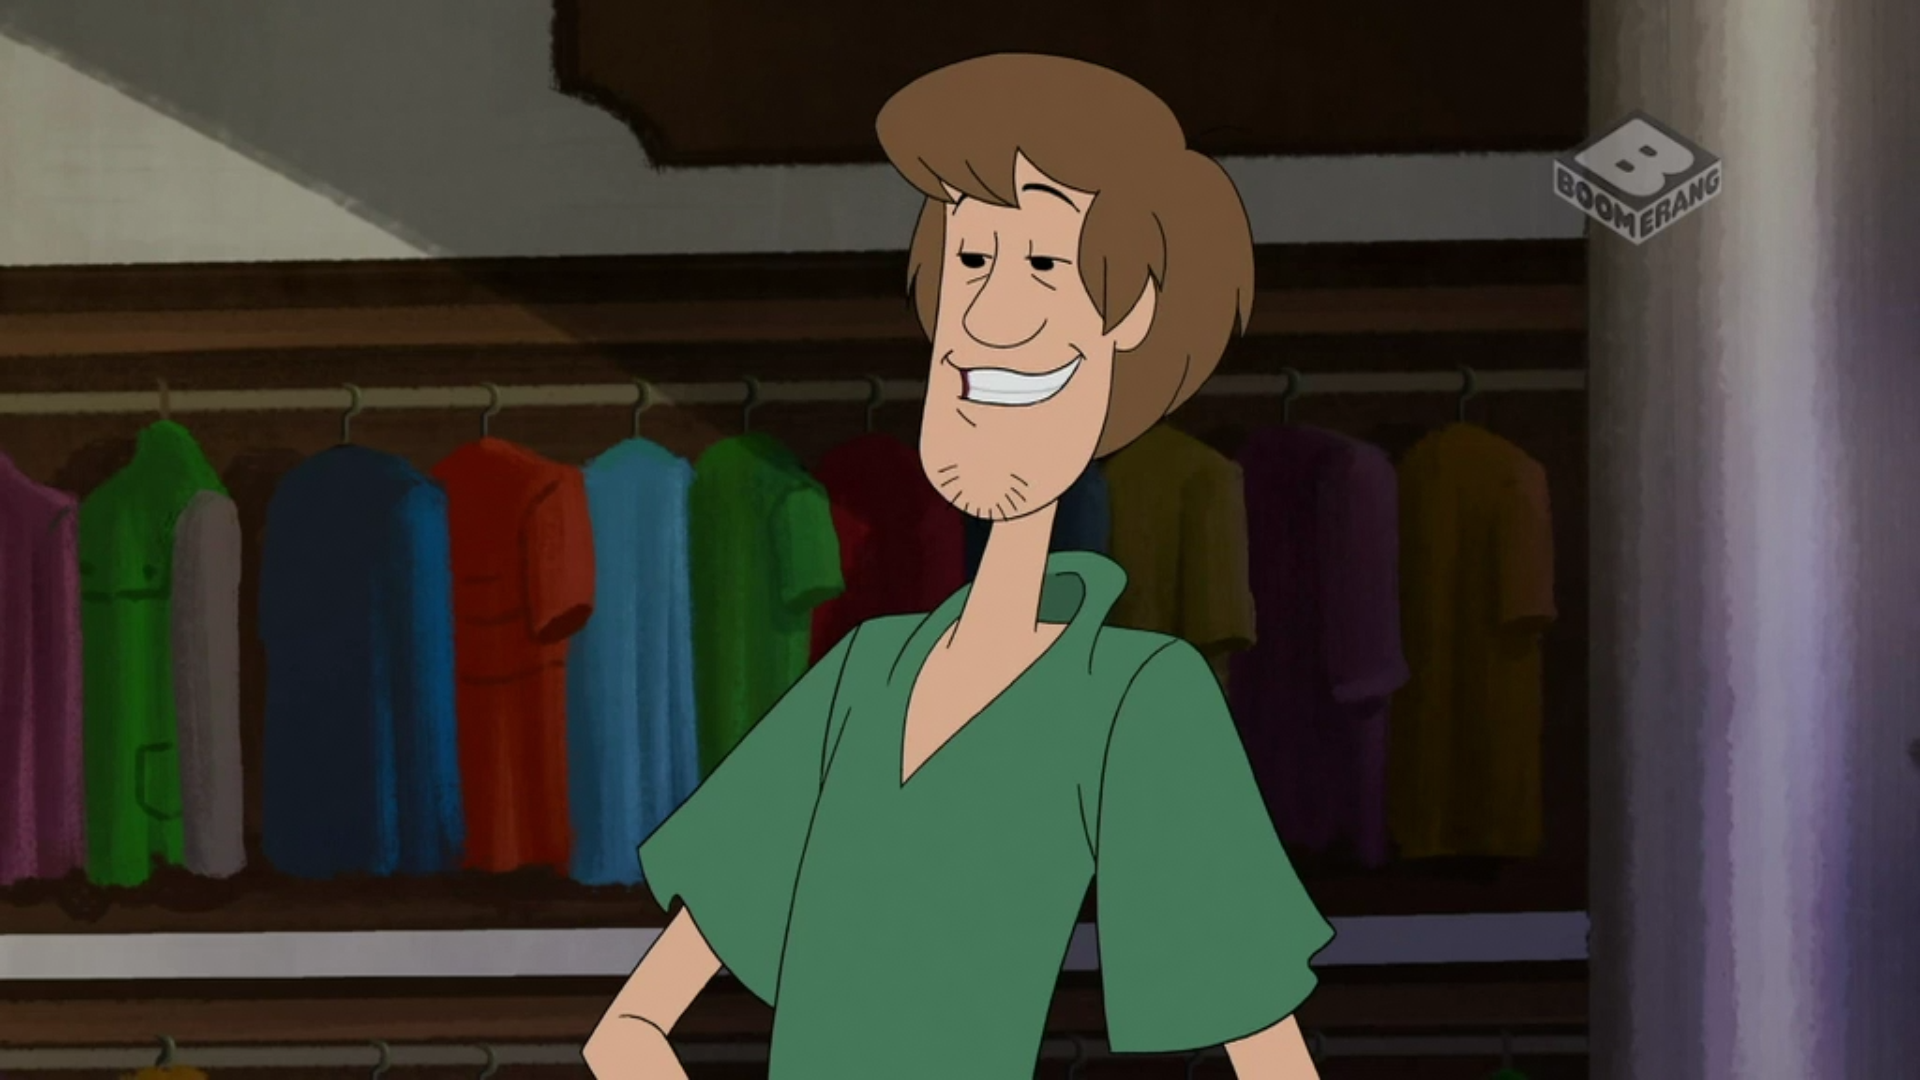 Shaggy rogers scoobypedia fandom powered by wikia - Scooby doo sammy ...